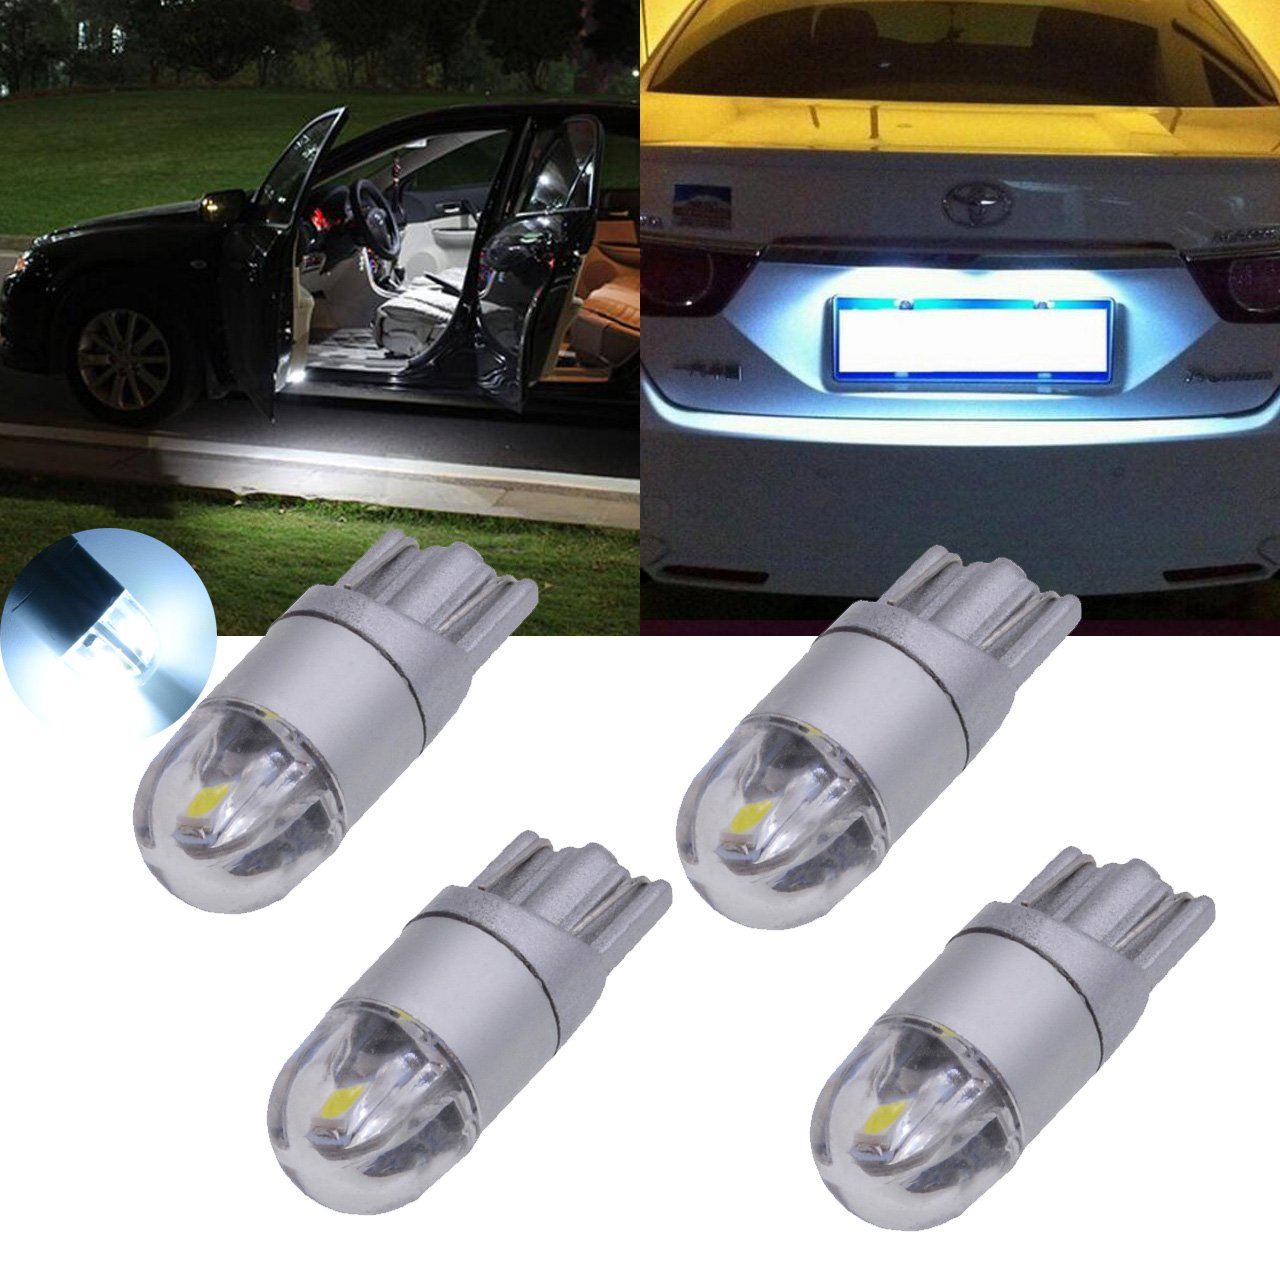 TUINCYN T10 W5W 194 3030-2-SMD Ice Blue LED Bulb 168 175 192 2825 Auto Interior Light Festoon Dome Light License Plate Lights Car Reverse Parking Lamp Side Markers Bulb (Pack of 10)